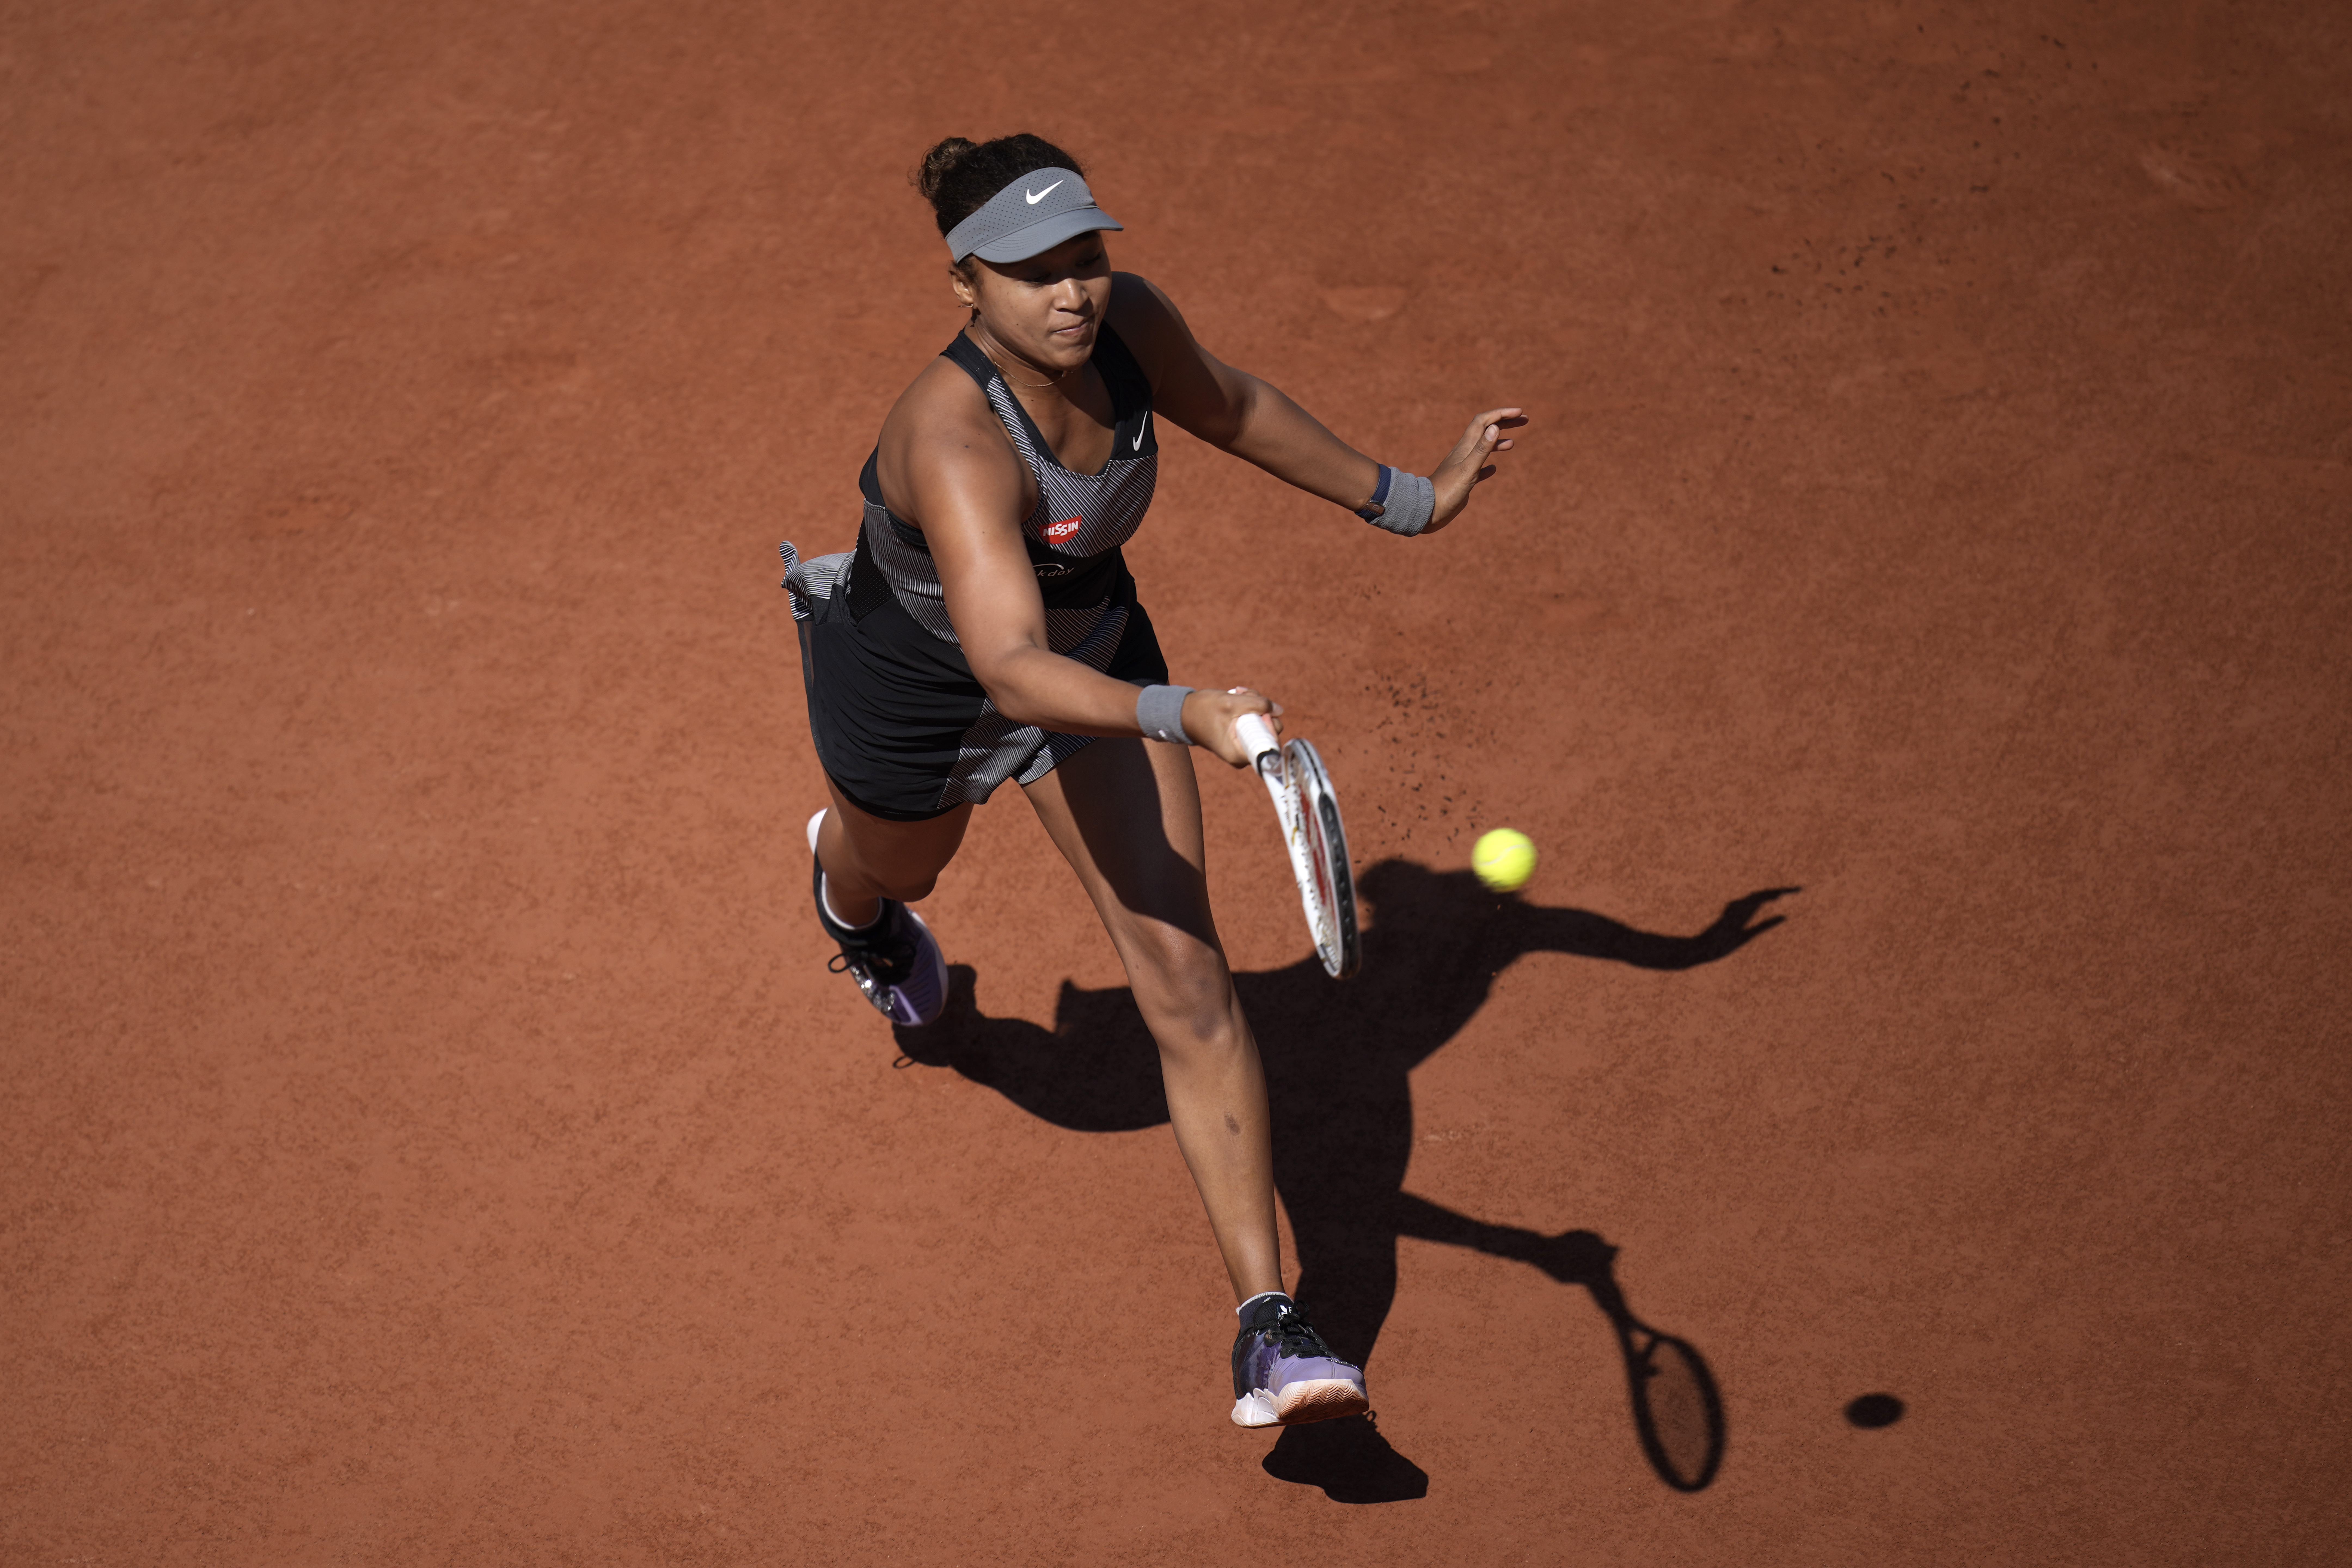 Japan's Naomi Osaka returns the ball to Romania's Patricia Maria Tig during their first round match at the Roland Garros stadium Sunday, May 30, 2021 in Paris.